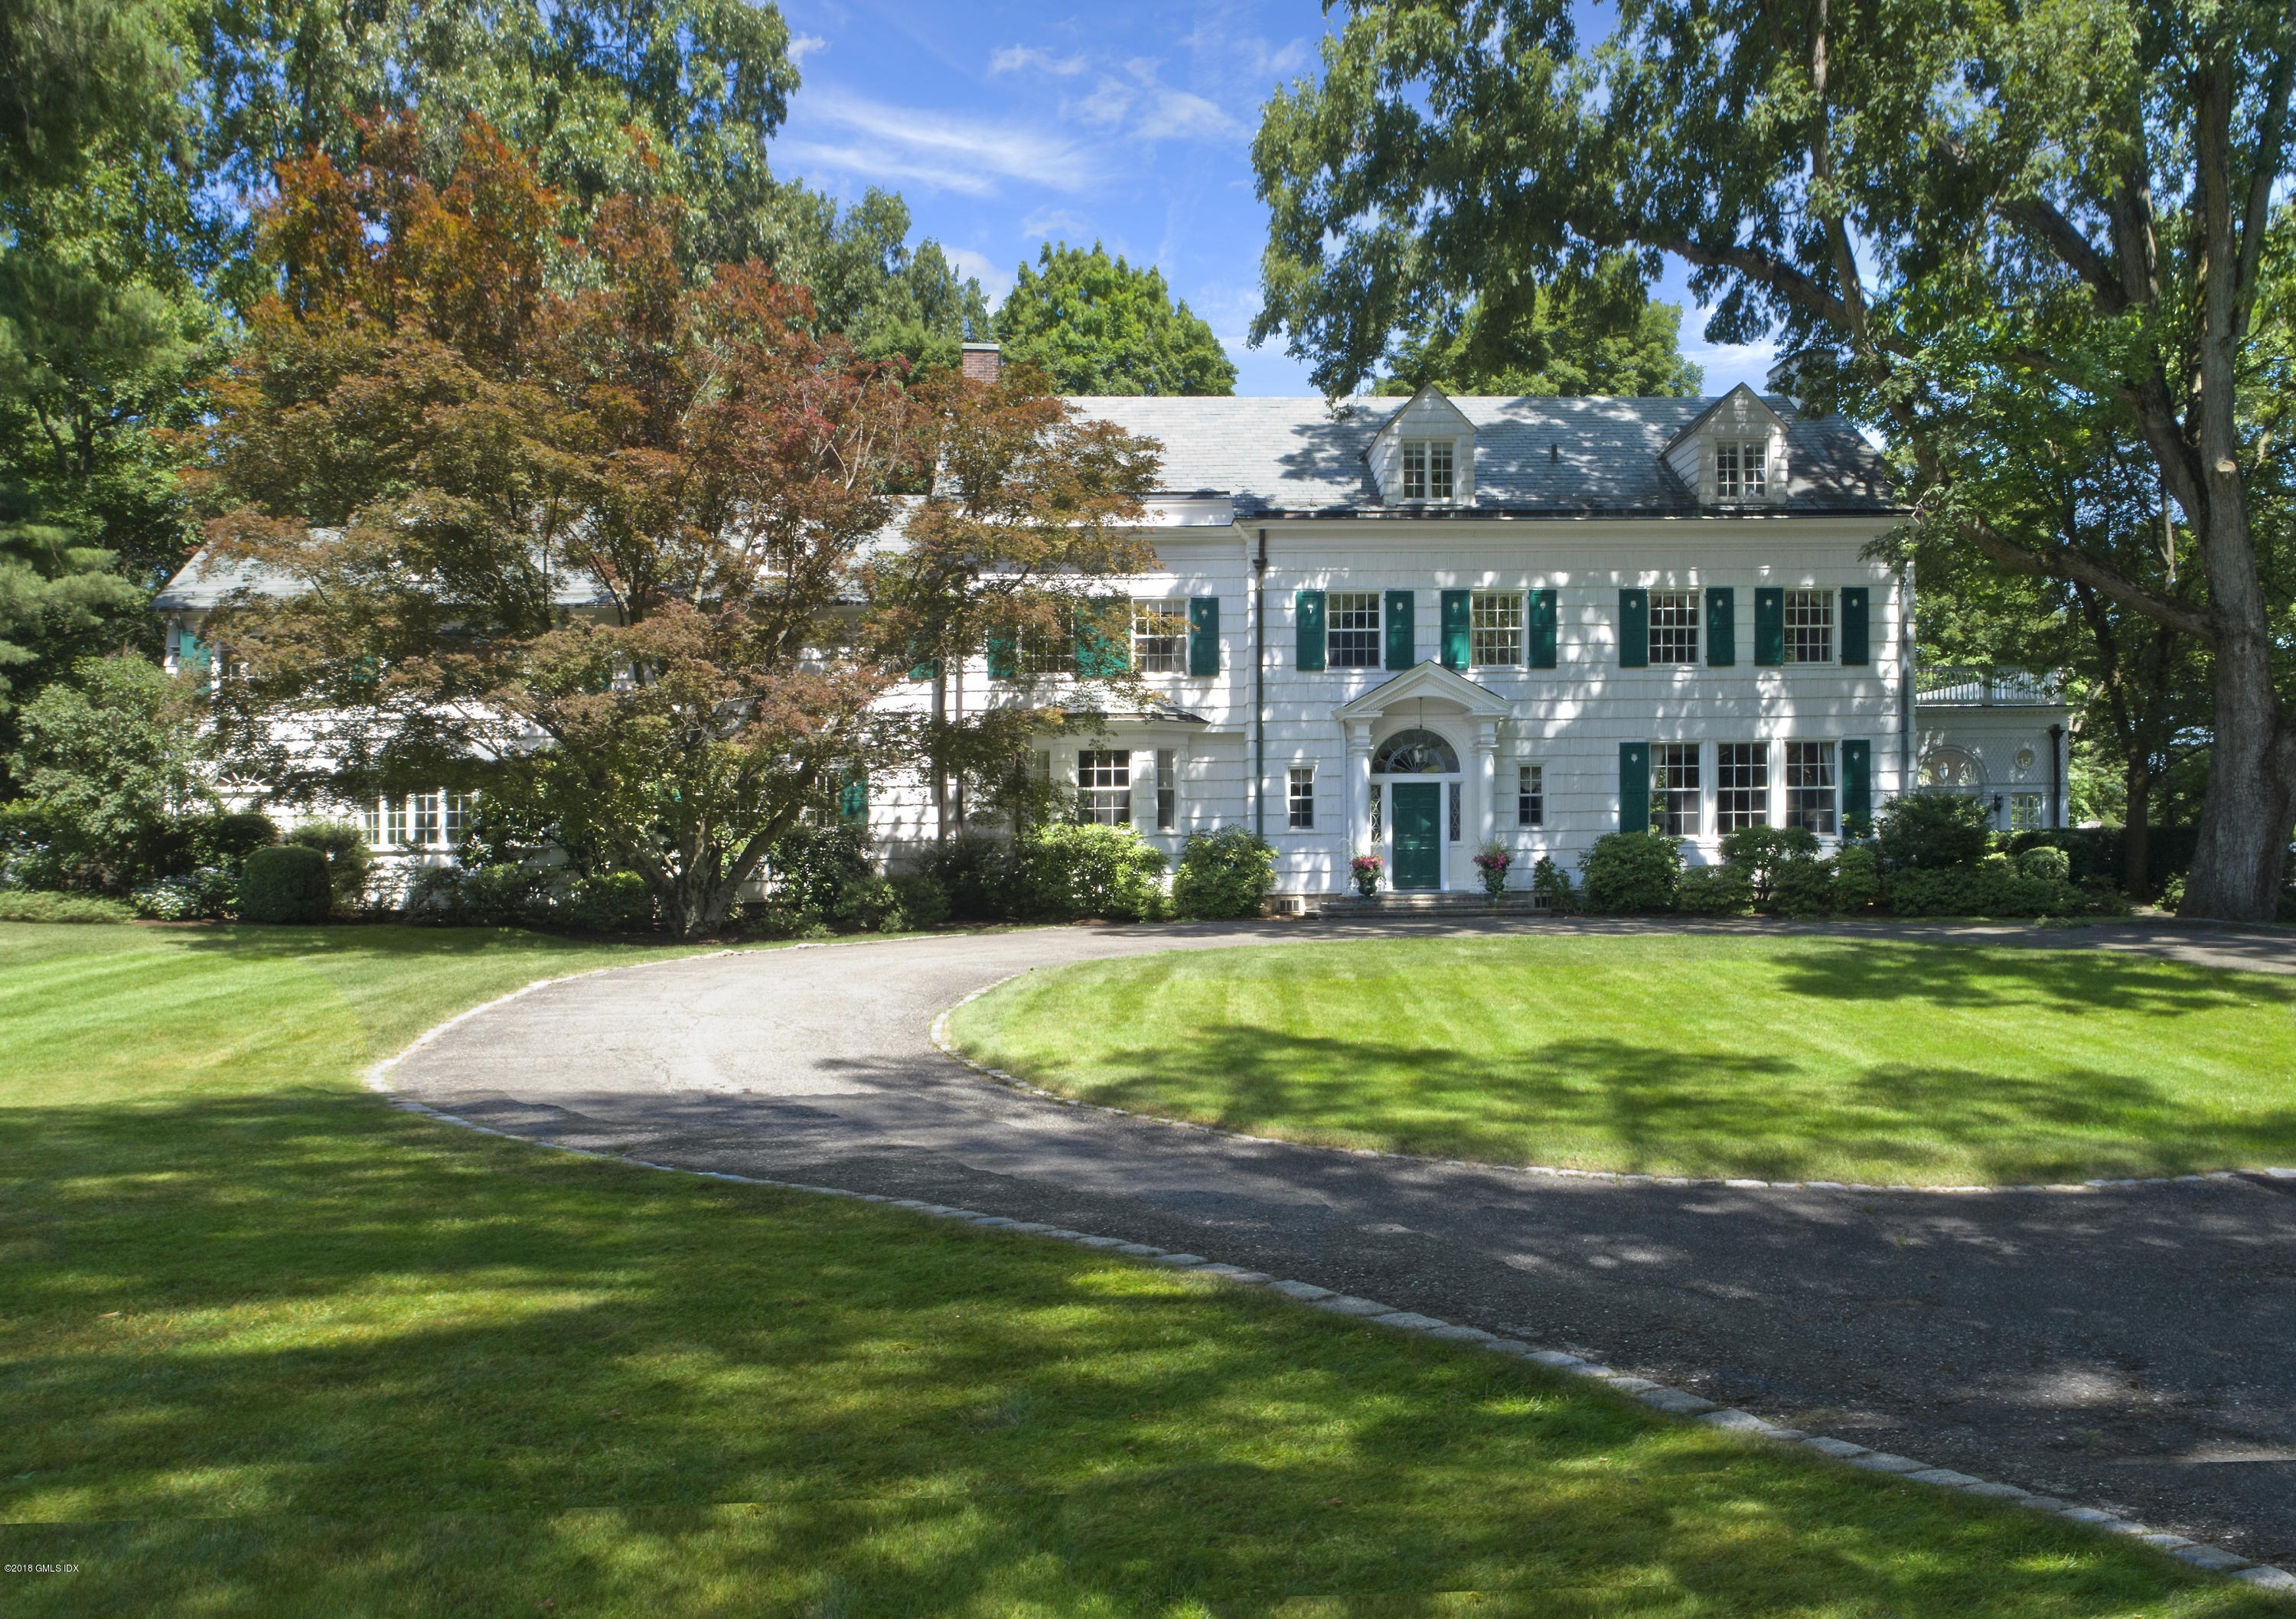 137 Old Mill Road,Greenwich,Connecticut 06831,6 Bedrooms Bedrooms,6 BathroomsBathrooms,Single family,Old Mill,105037